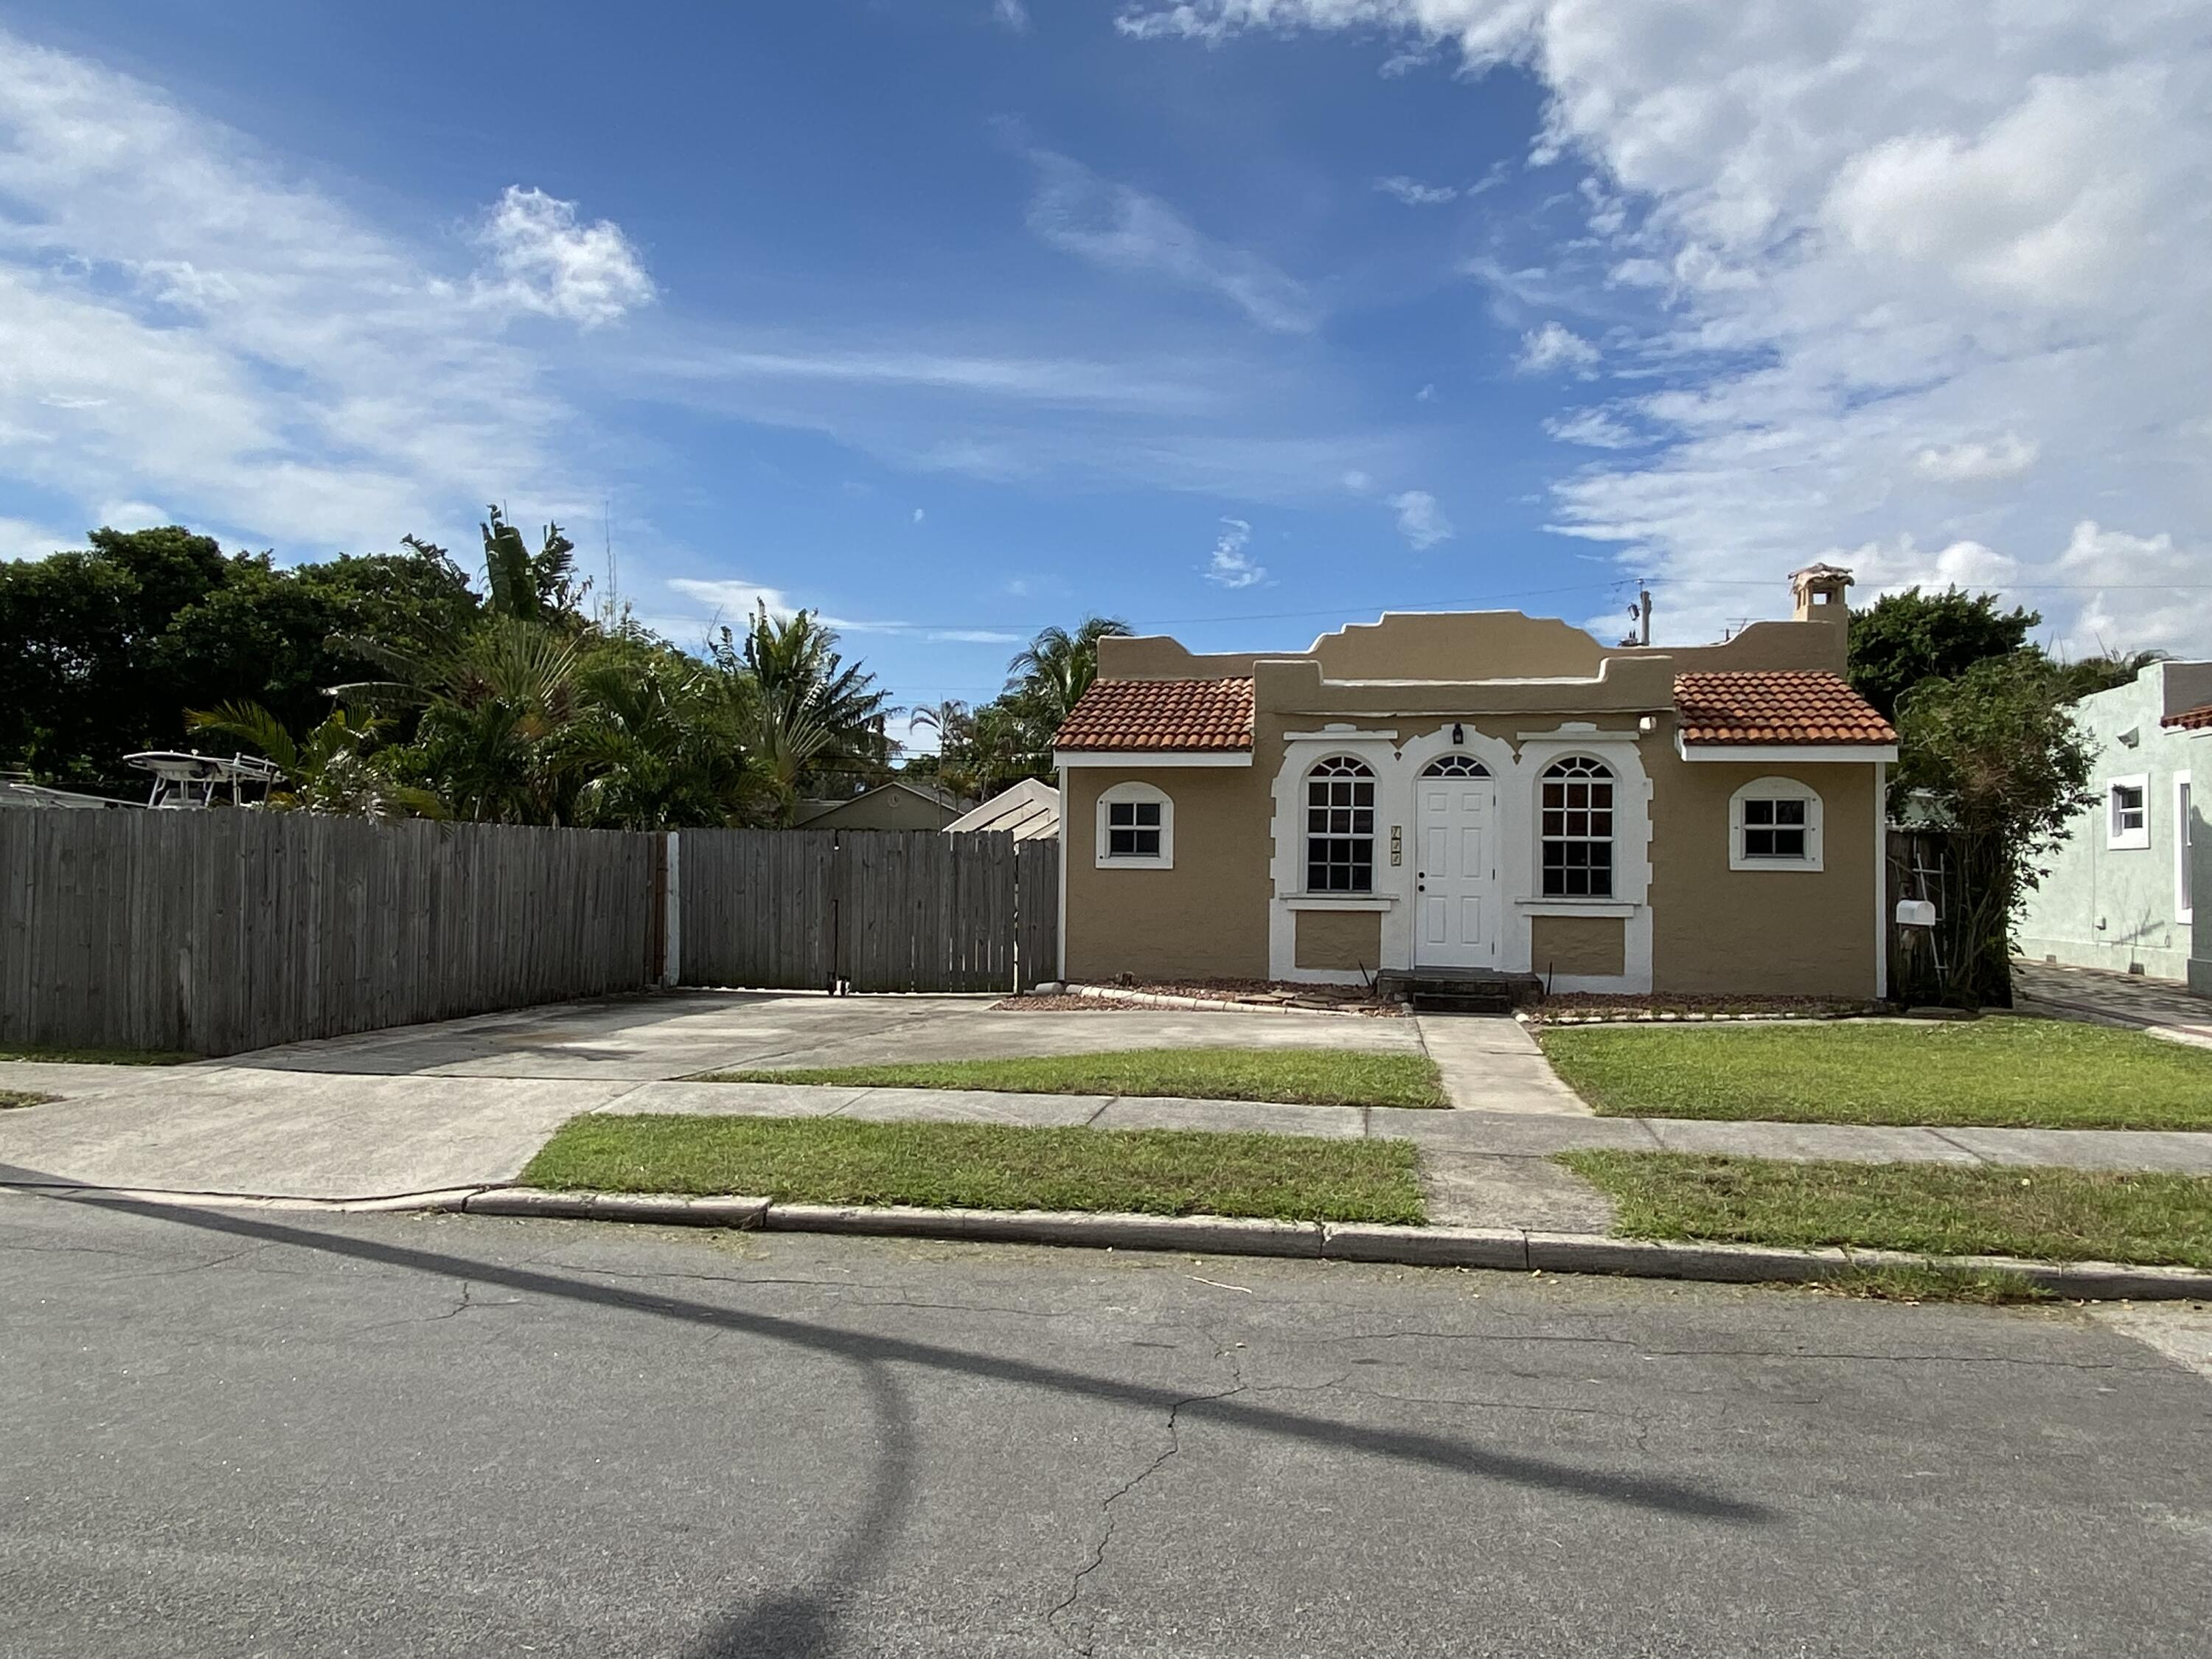 722  Valley Forge Road  For Sale 10747068, FL